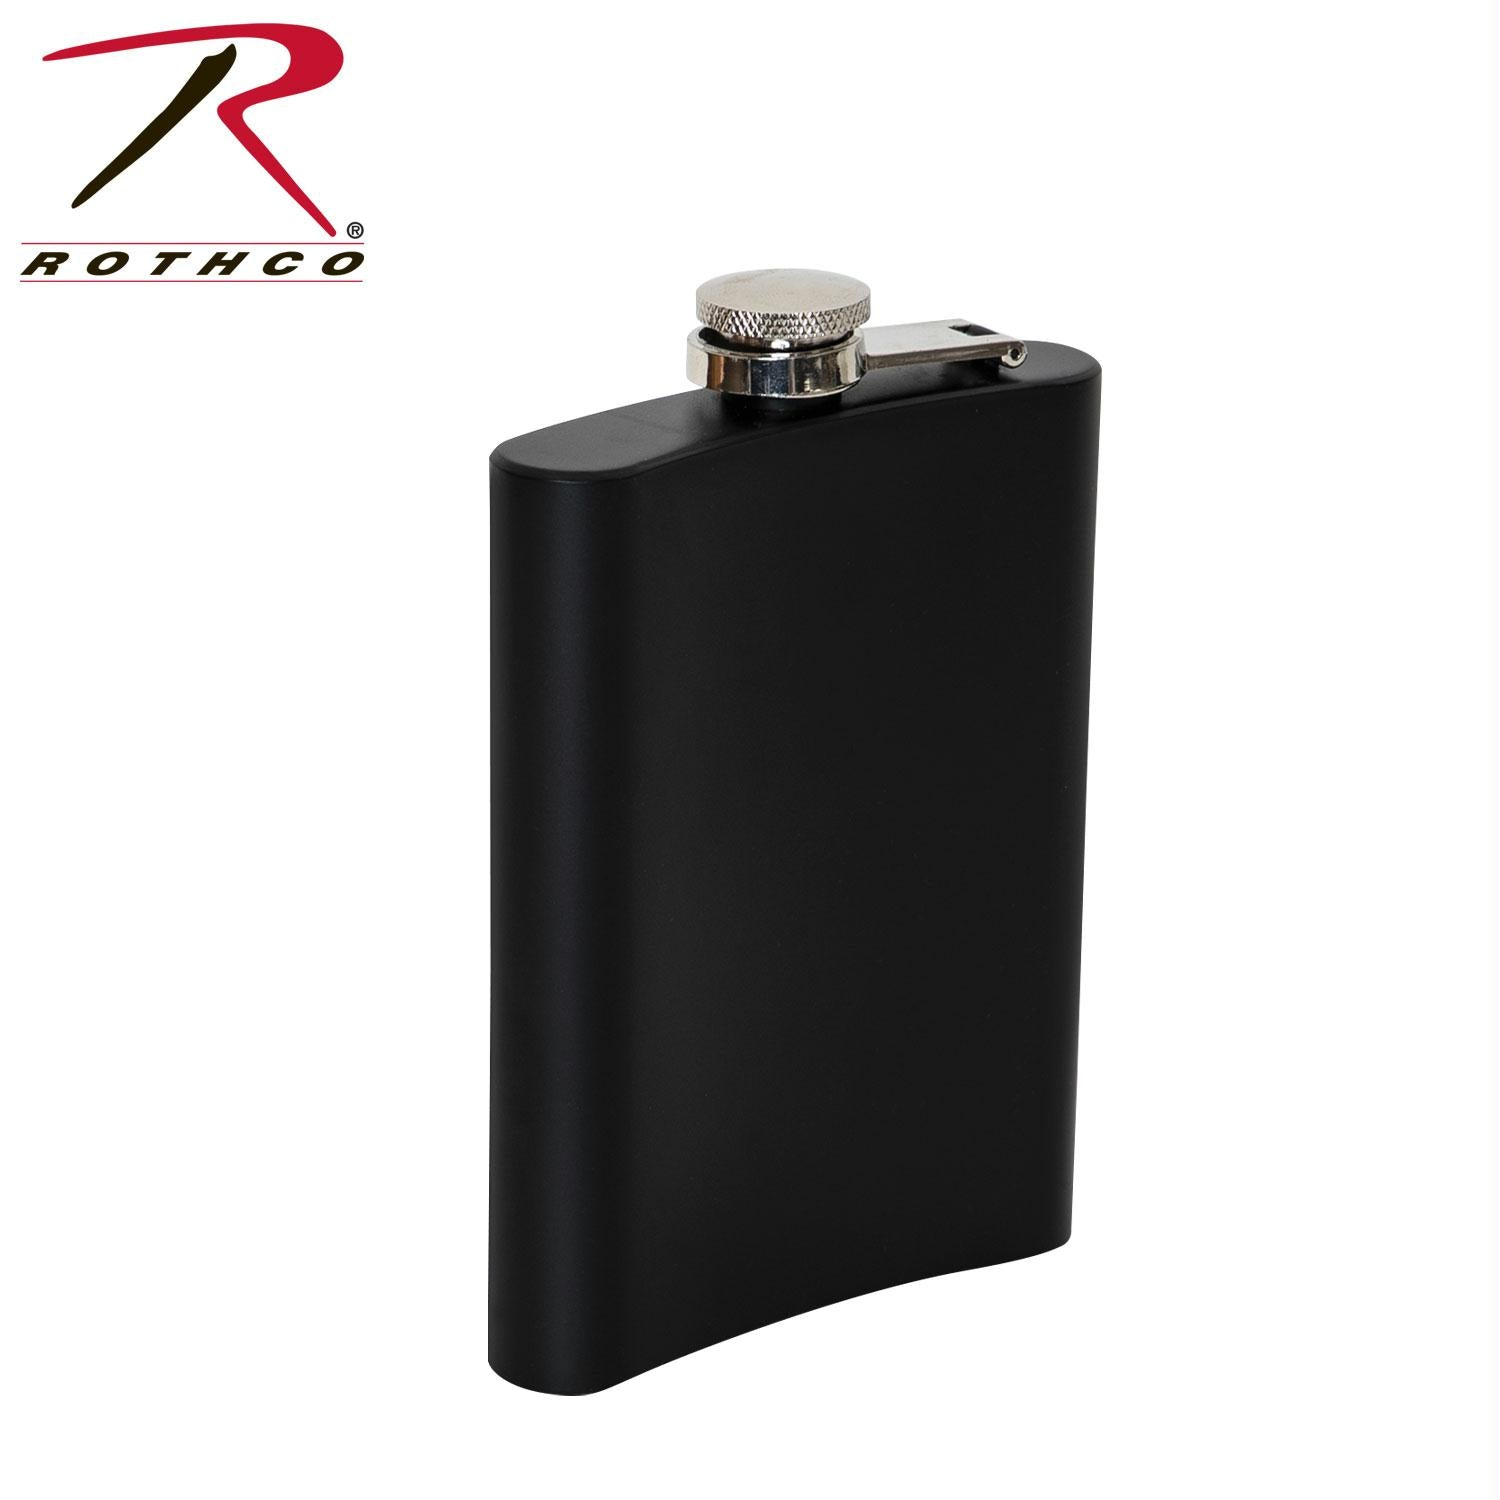 Rothco Stainless Steel Flask - Black